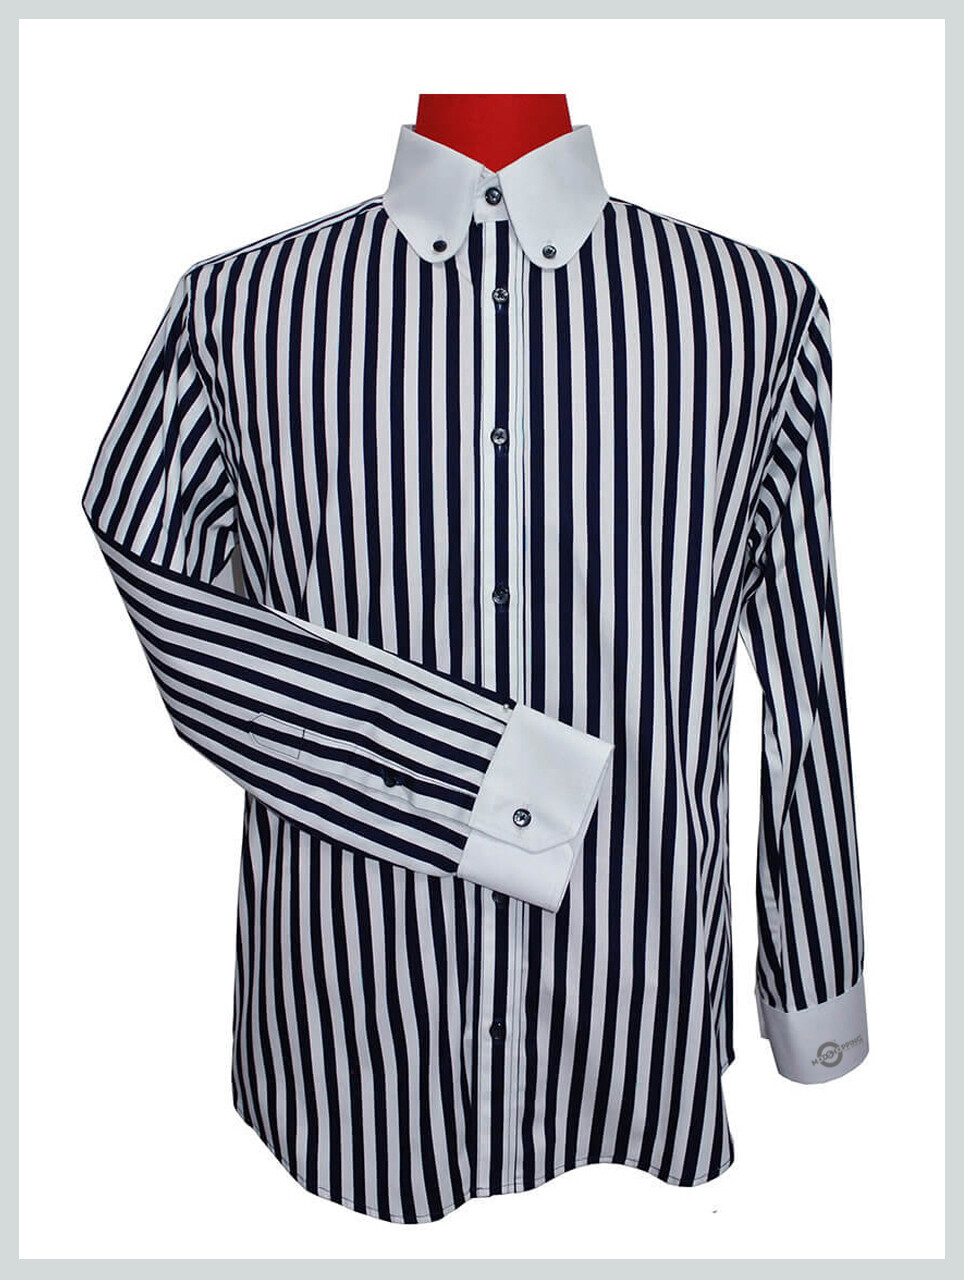 Vintage Navy Blue Striped Shirt Notched On Cuff